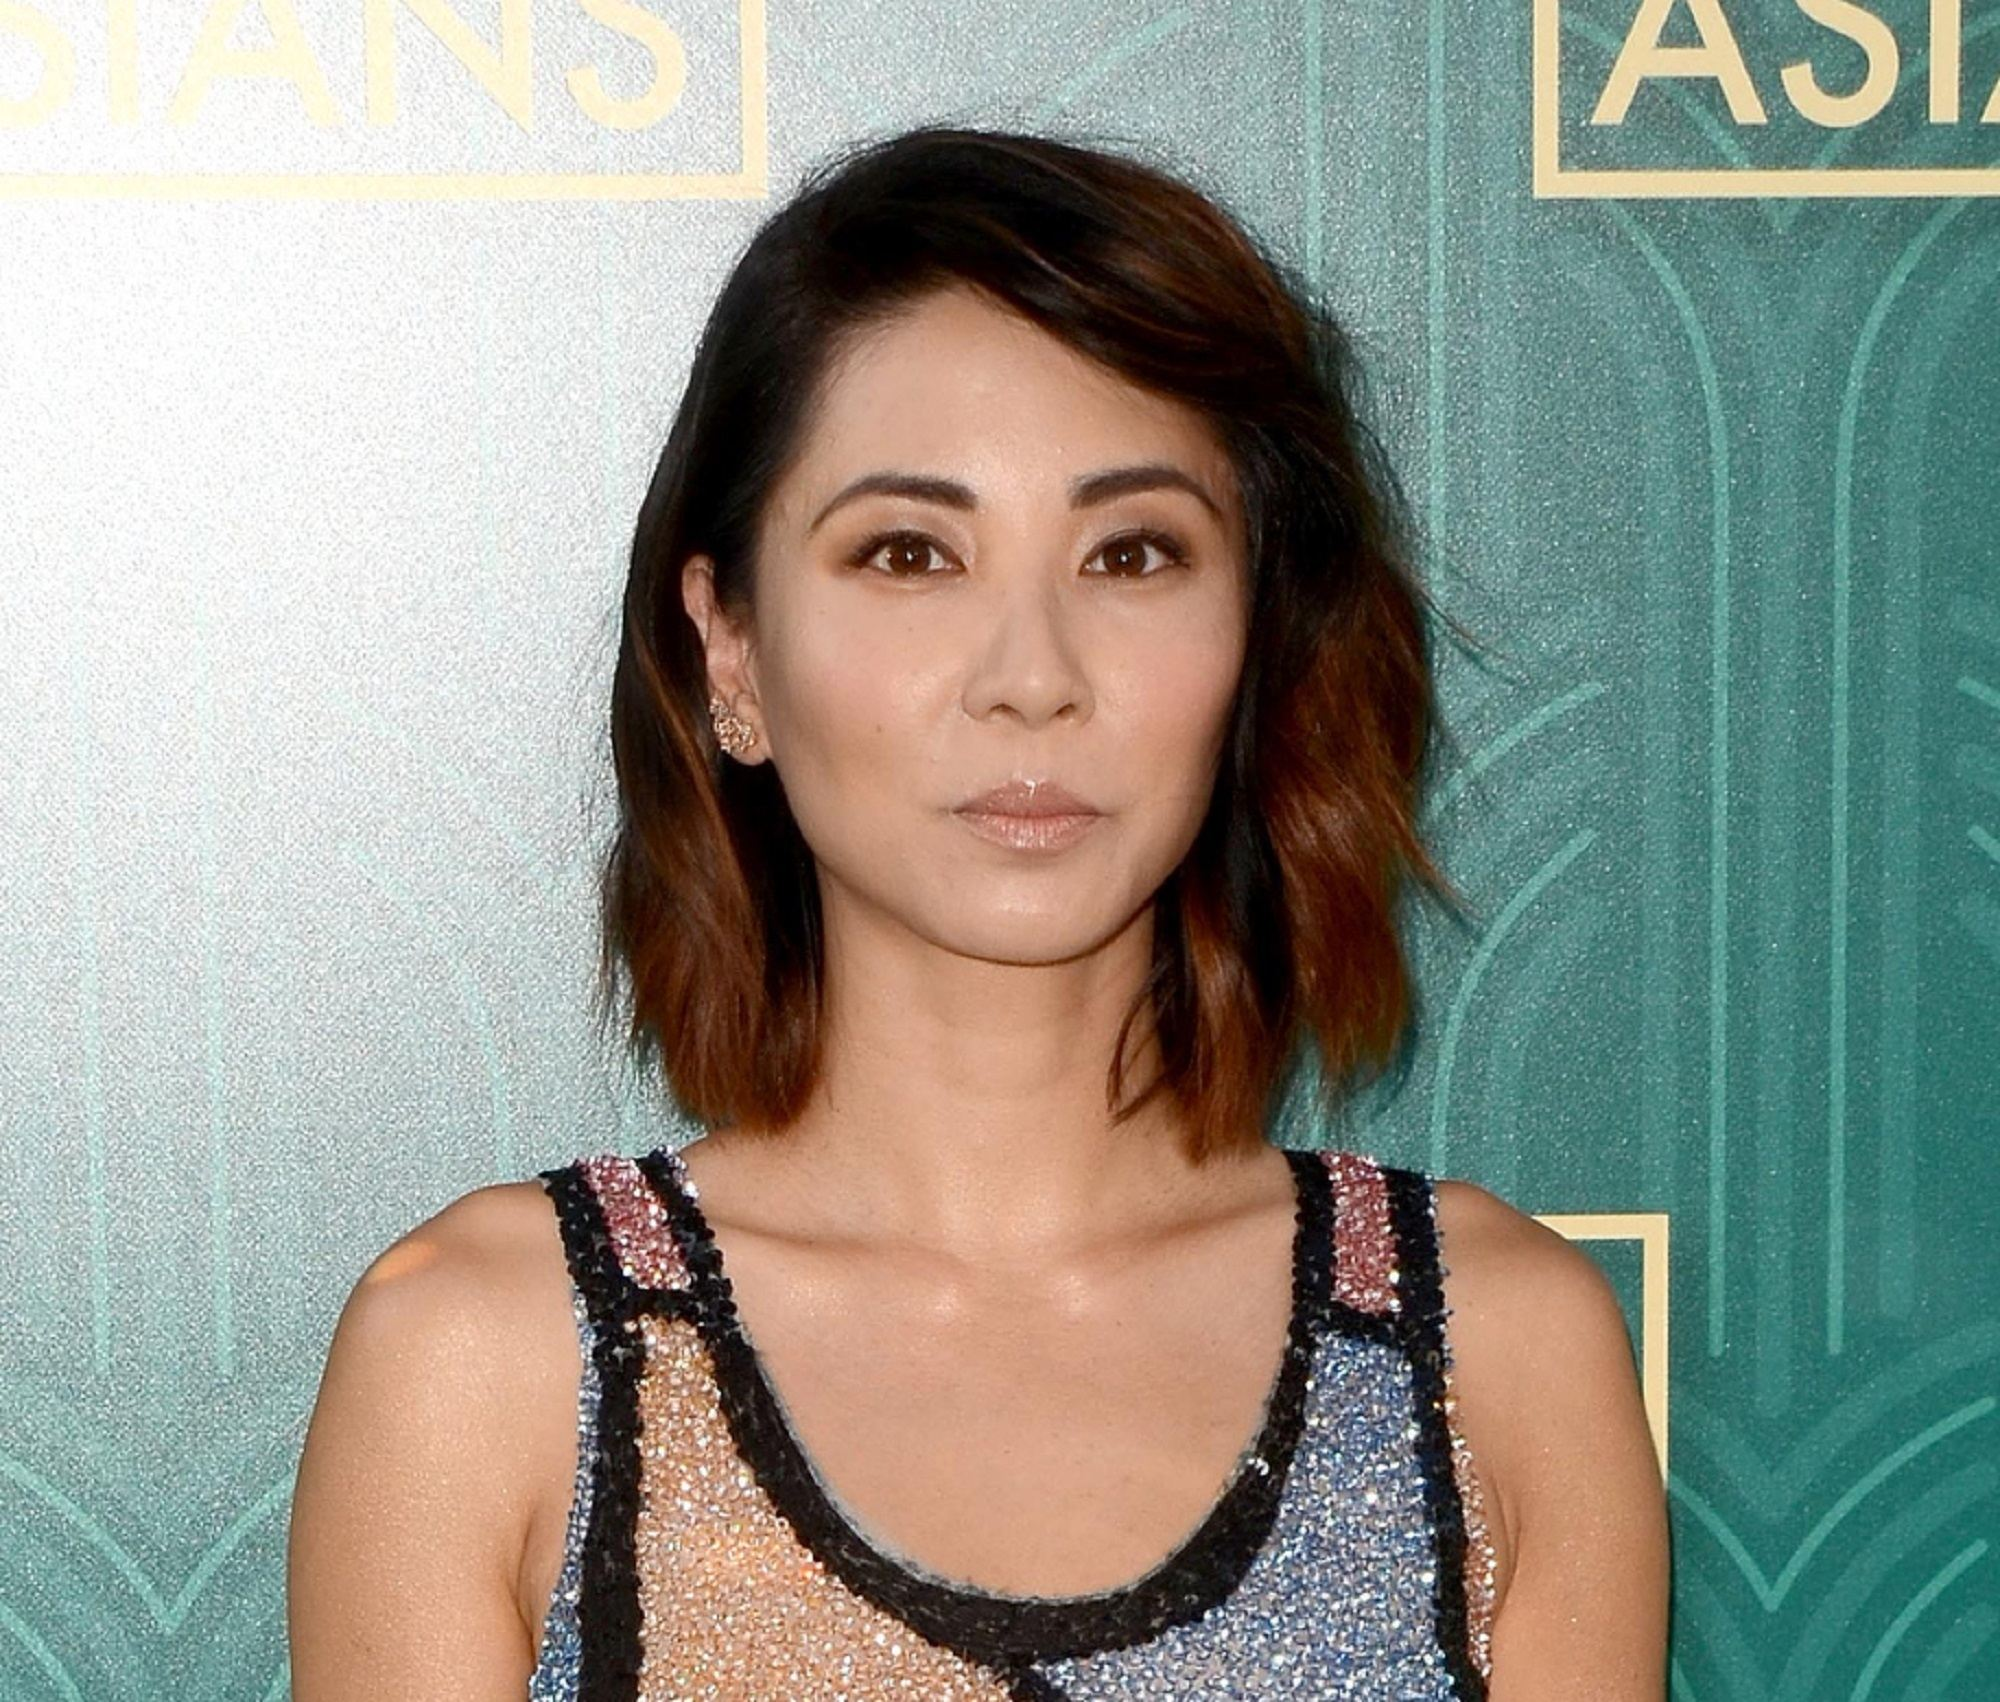 Crazy rich hairstyles: Asian woman with wavy lob